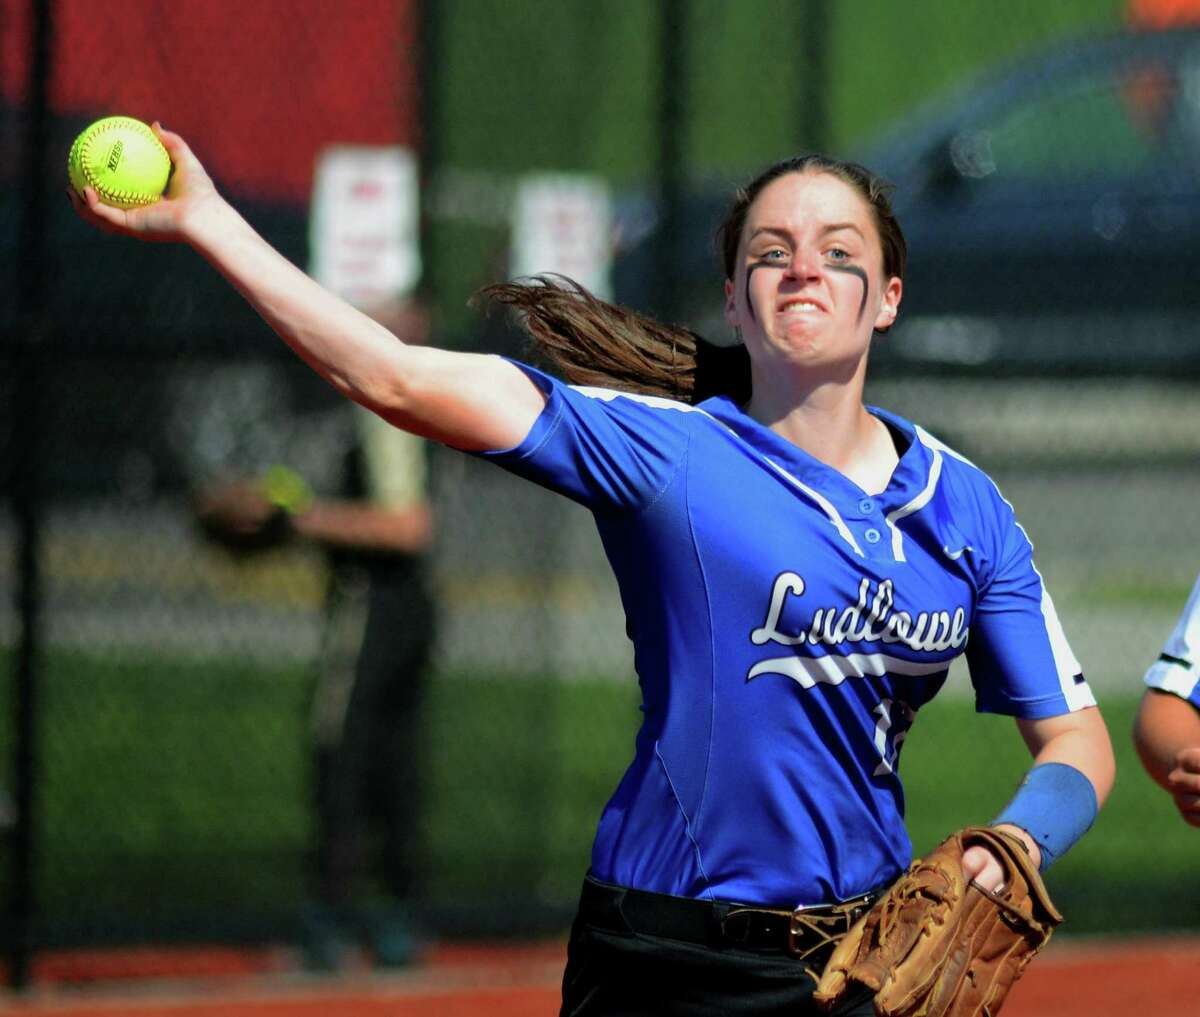 Fairfield Ludlowe's Elizabeth Doolan (17) sends a St. Jospeh ball to first during FCIAC softball semi-final action at Sacred Heart University in Fairfield, Conn., on Thursday May 24, 2018.